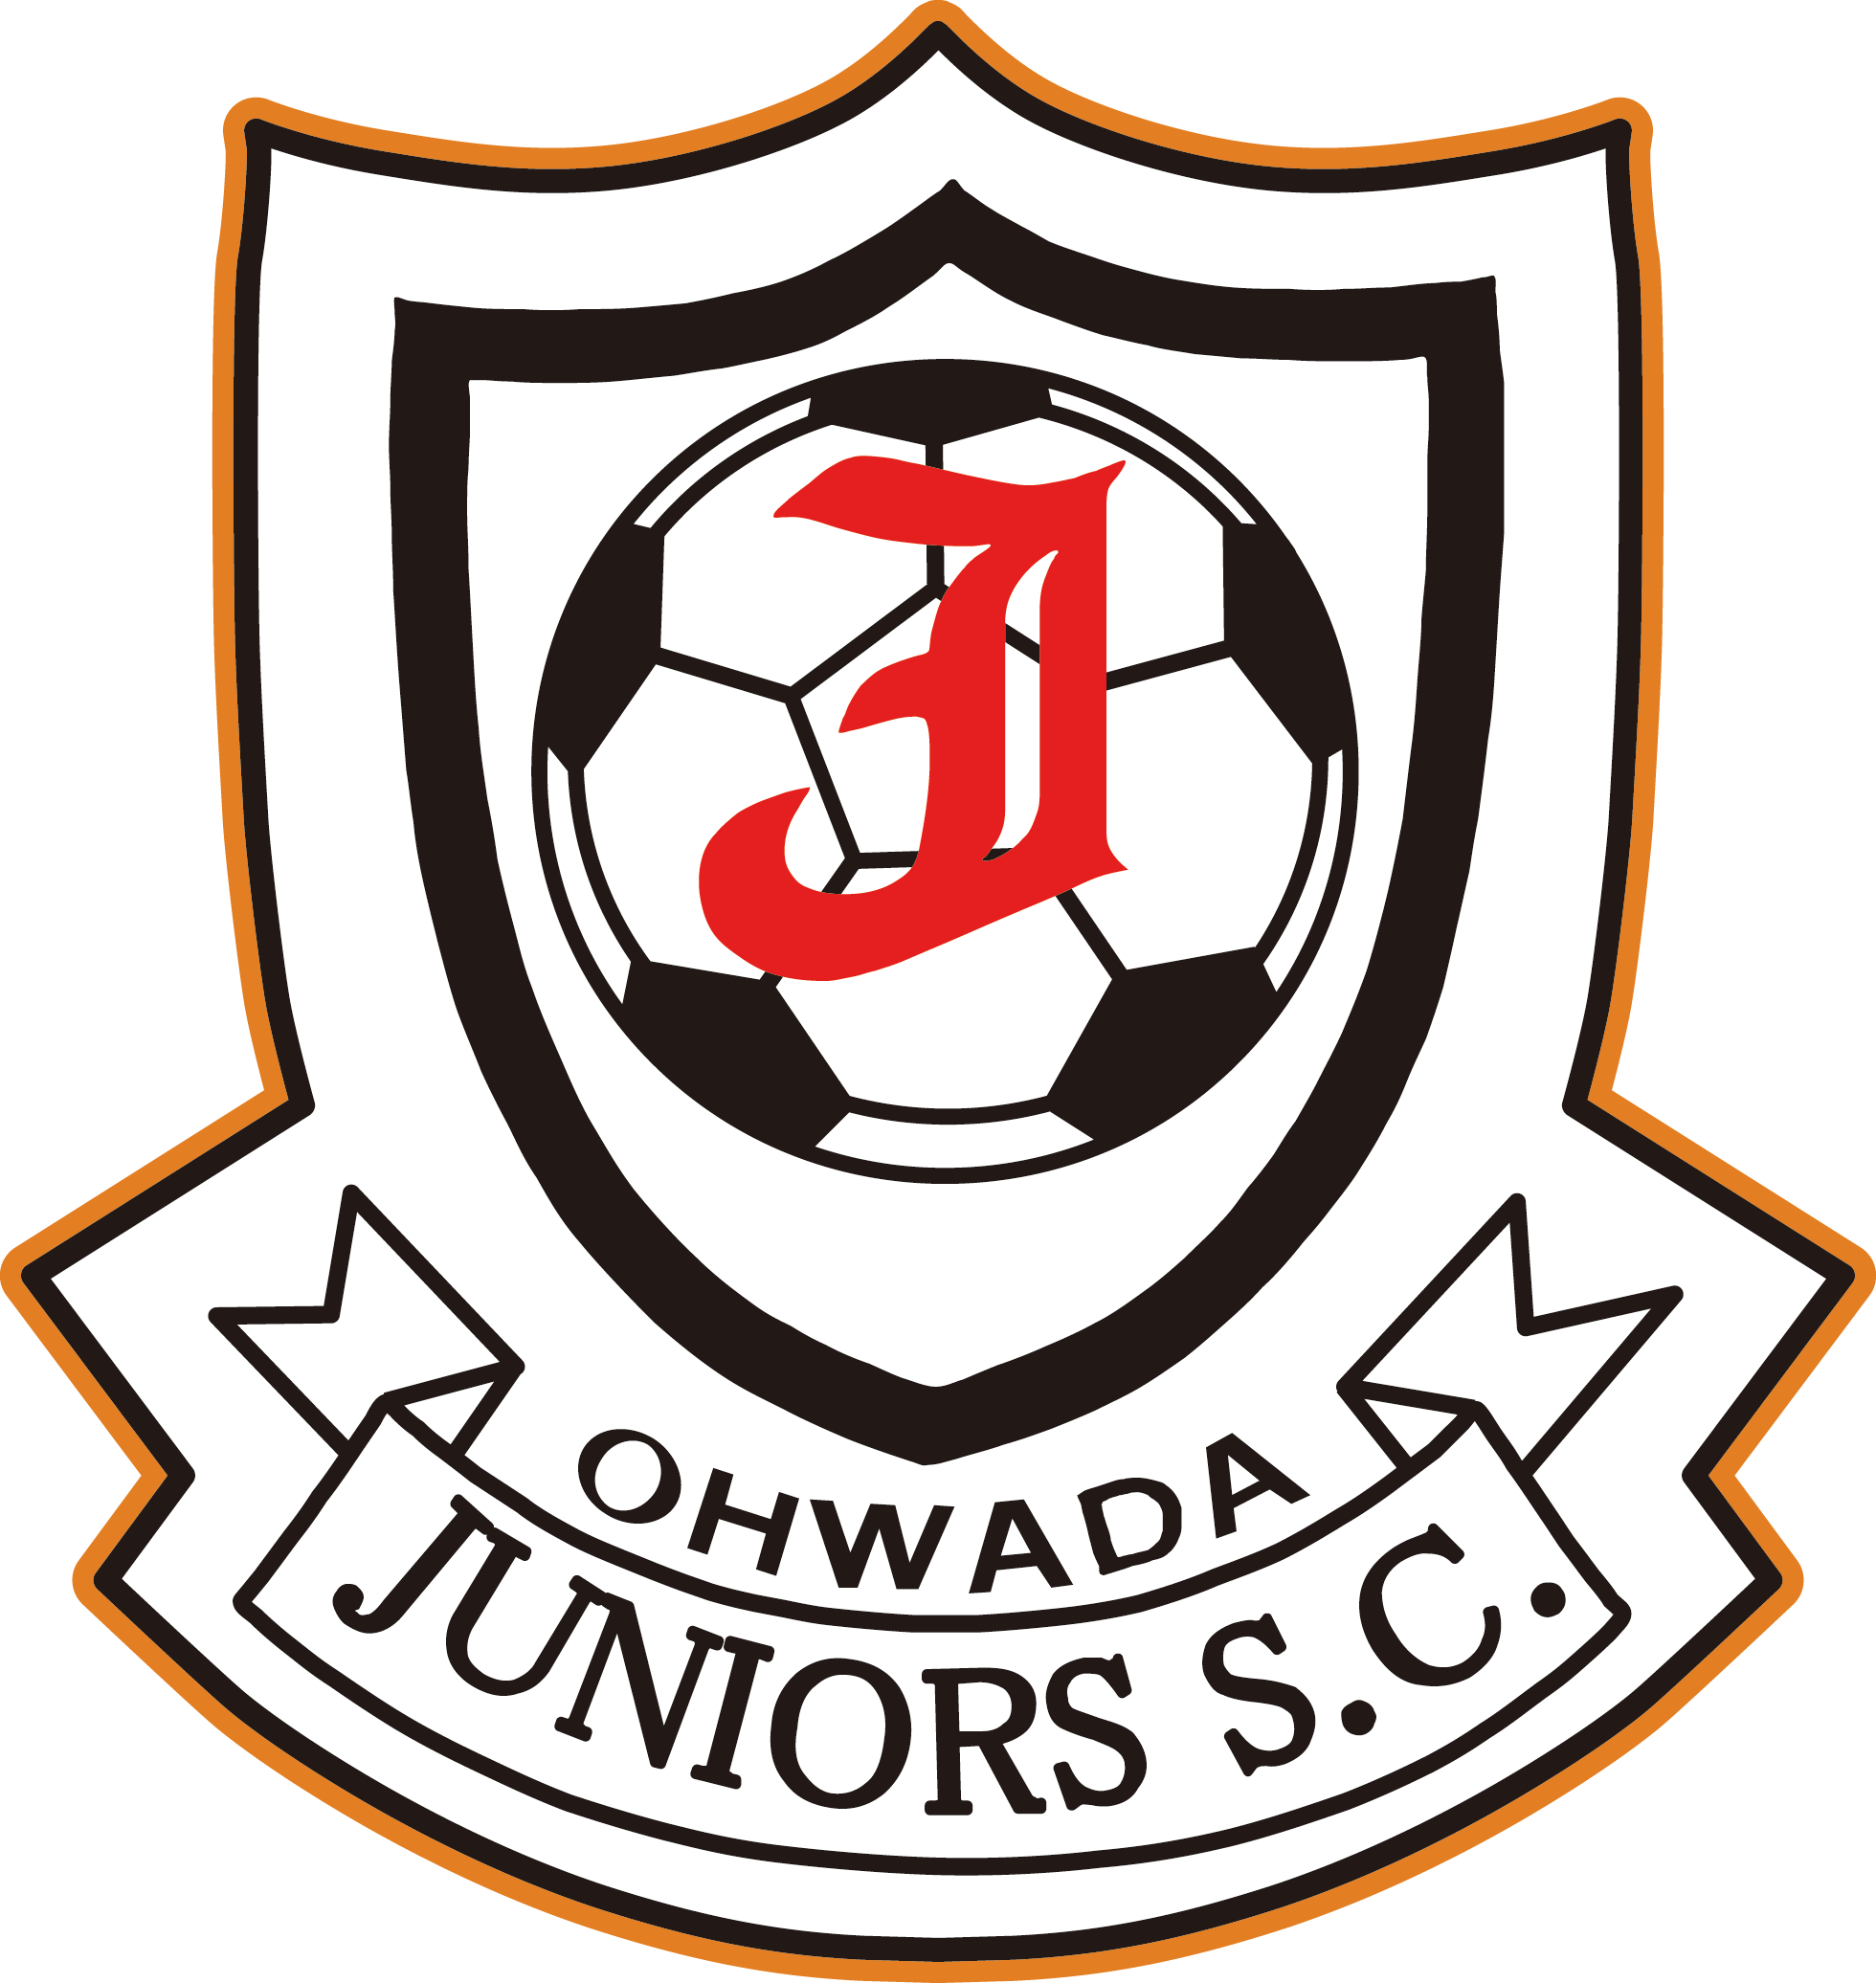 OWADA-JUNIORS